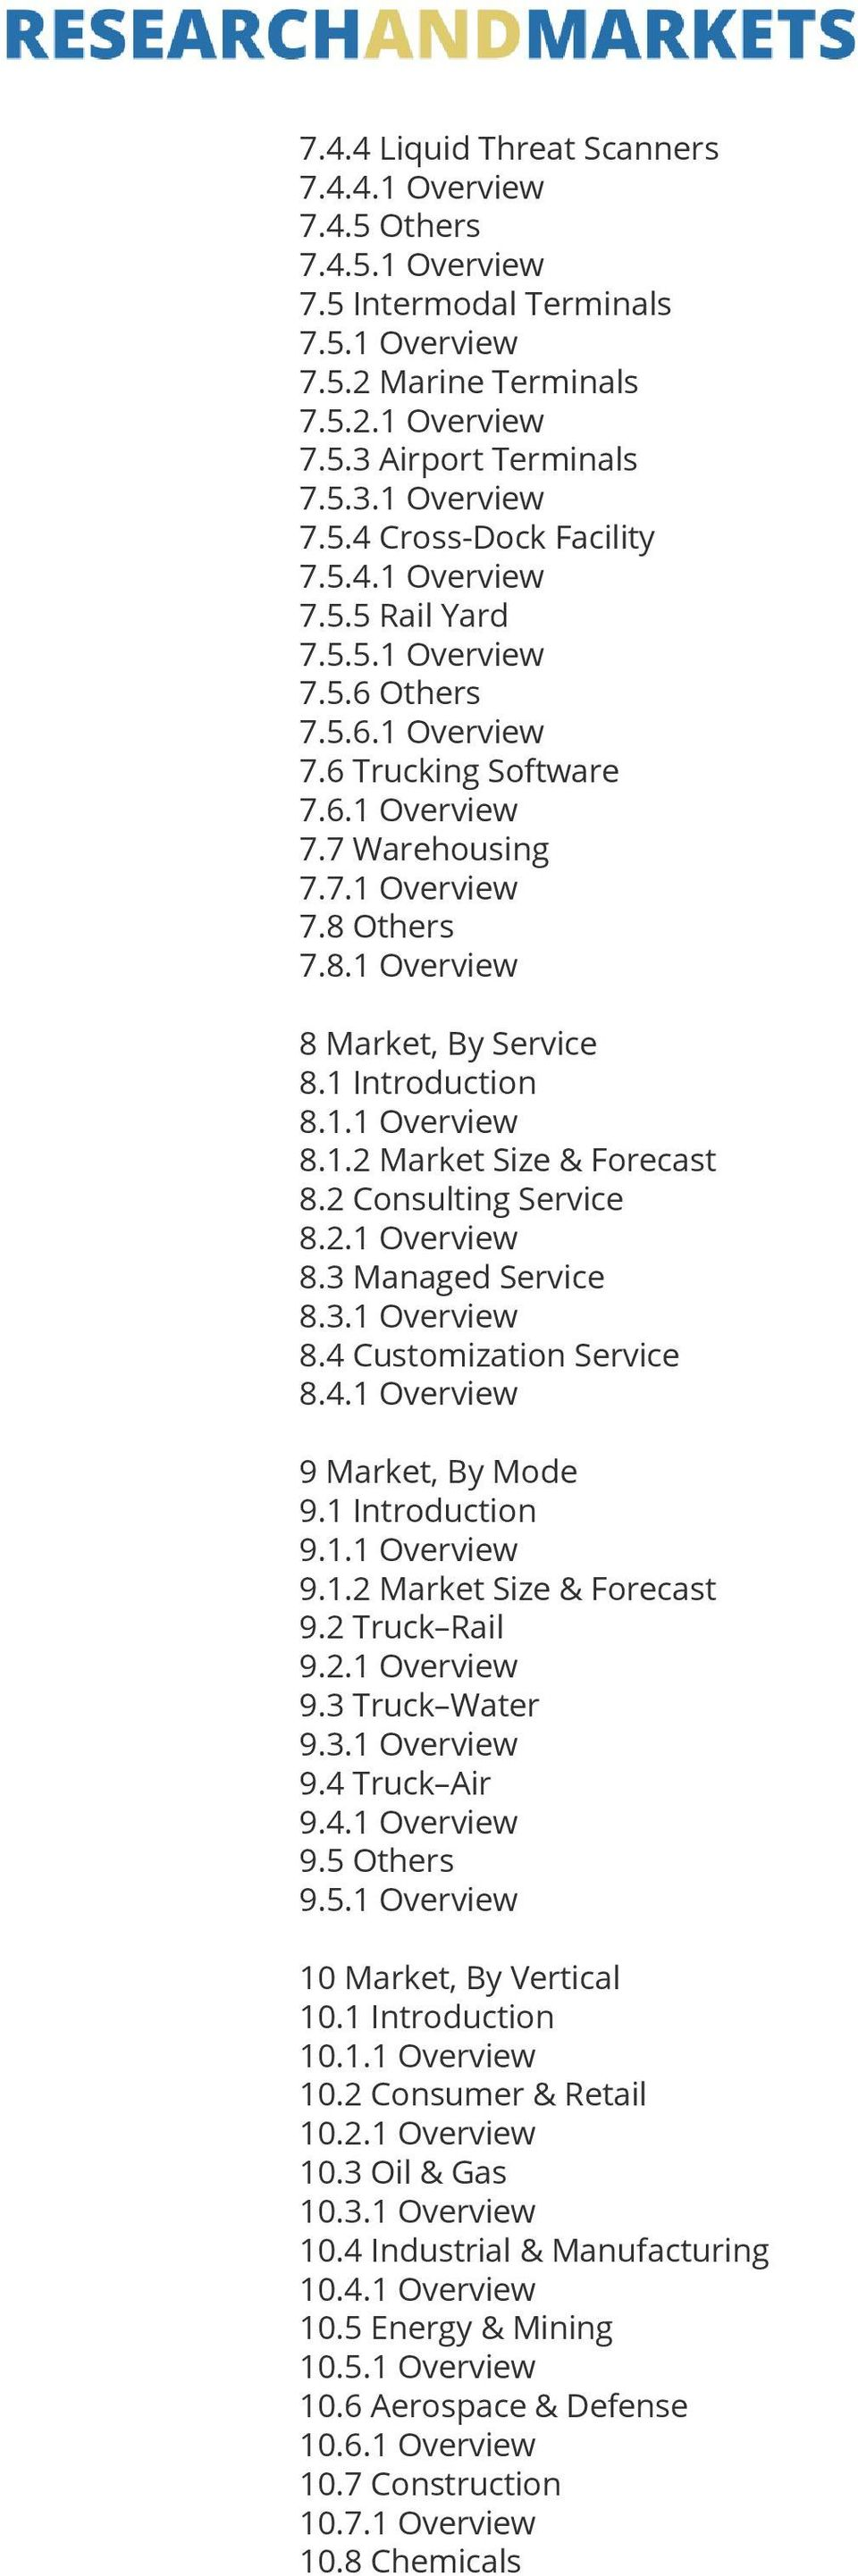 1 Introduction 8.1.1 Overview 8.1.2 Market Size & Forecast 8.2 Consulting Service 8.2.1 Overview 8.3 Managed Service 8.3.1 Overview 8.4 Customization Service 8.4.1 Overview 9 Market, By Mode 9.